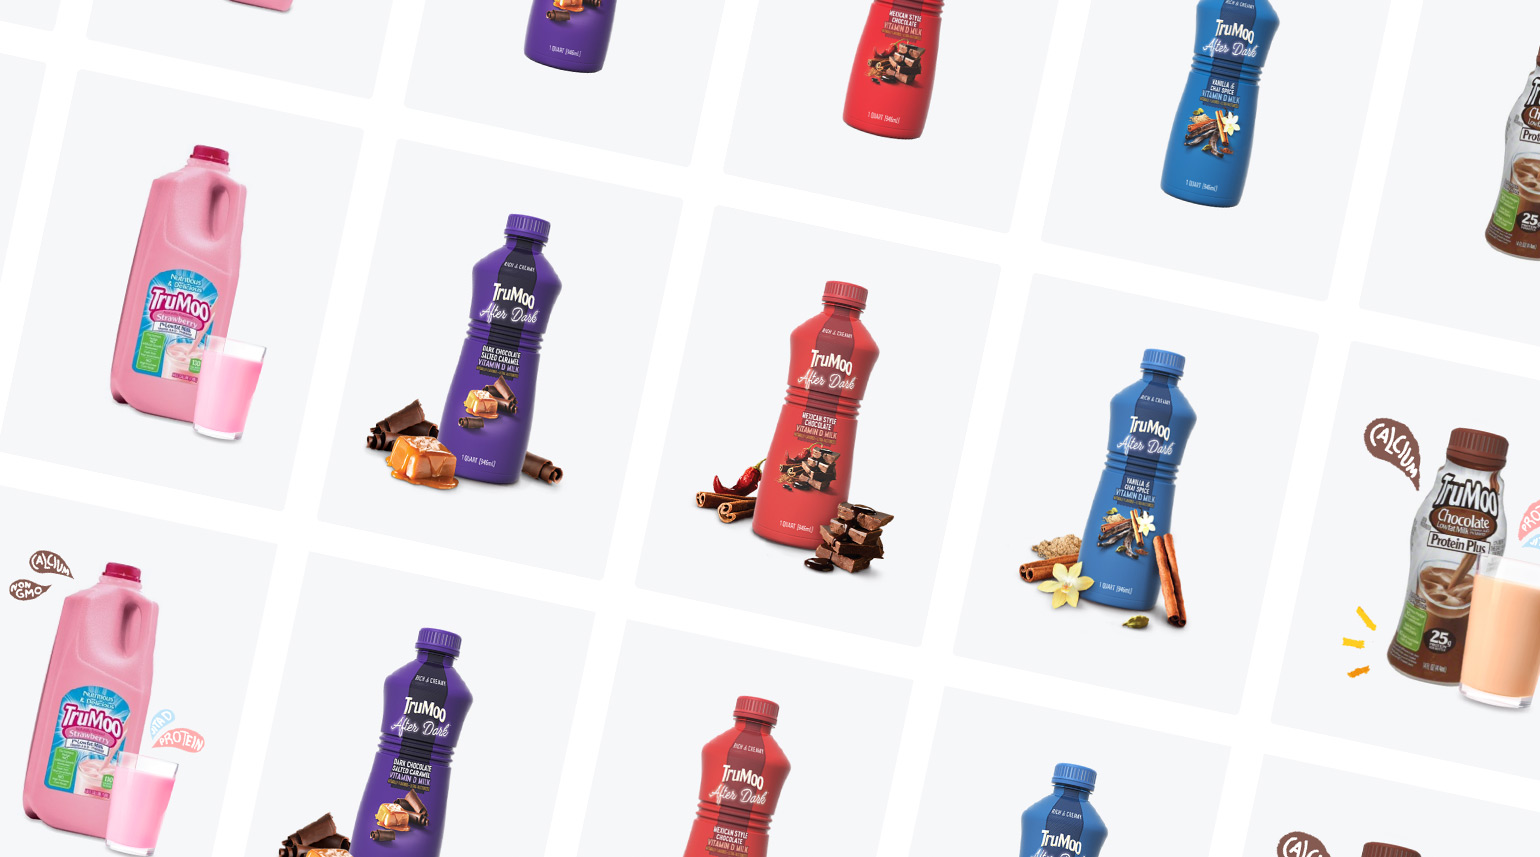 A grid of all the available TruMoo products and the custom photography.